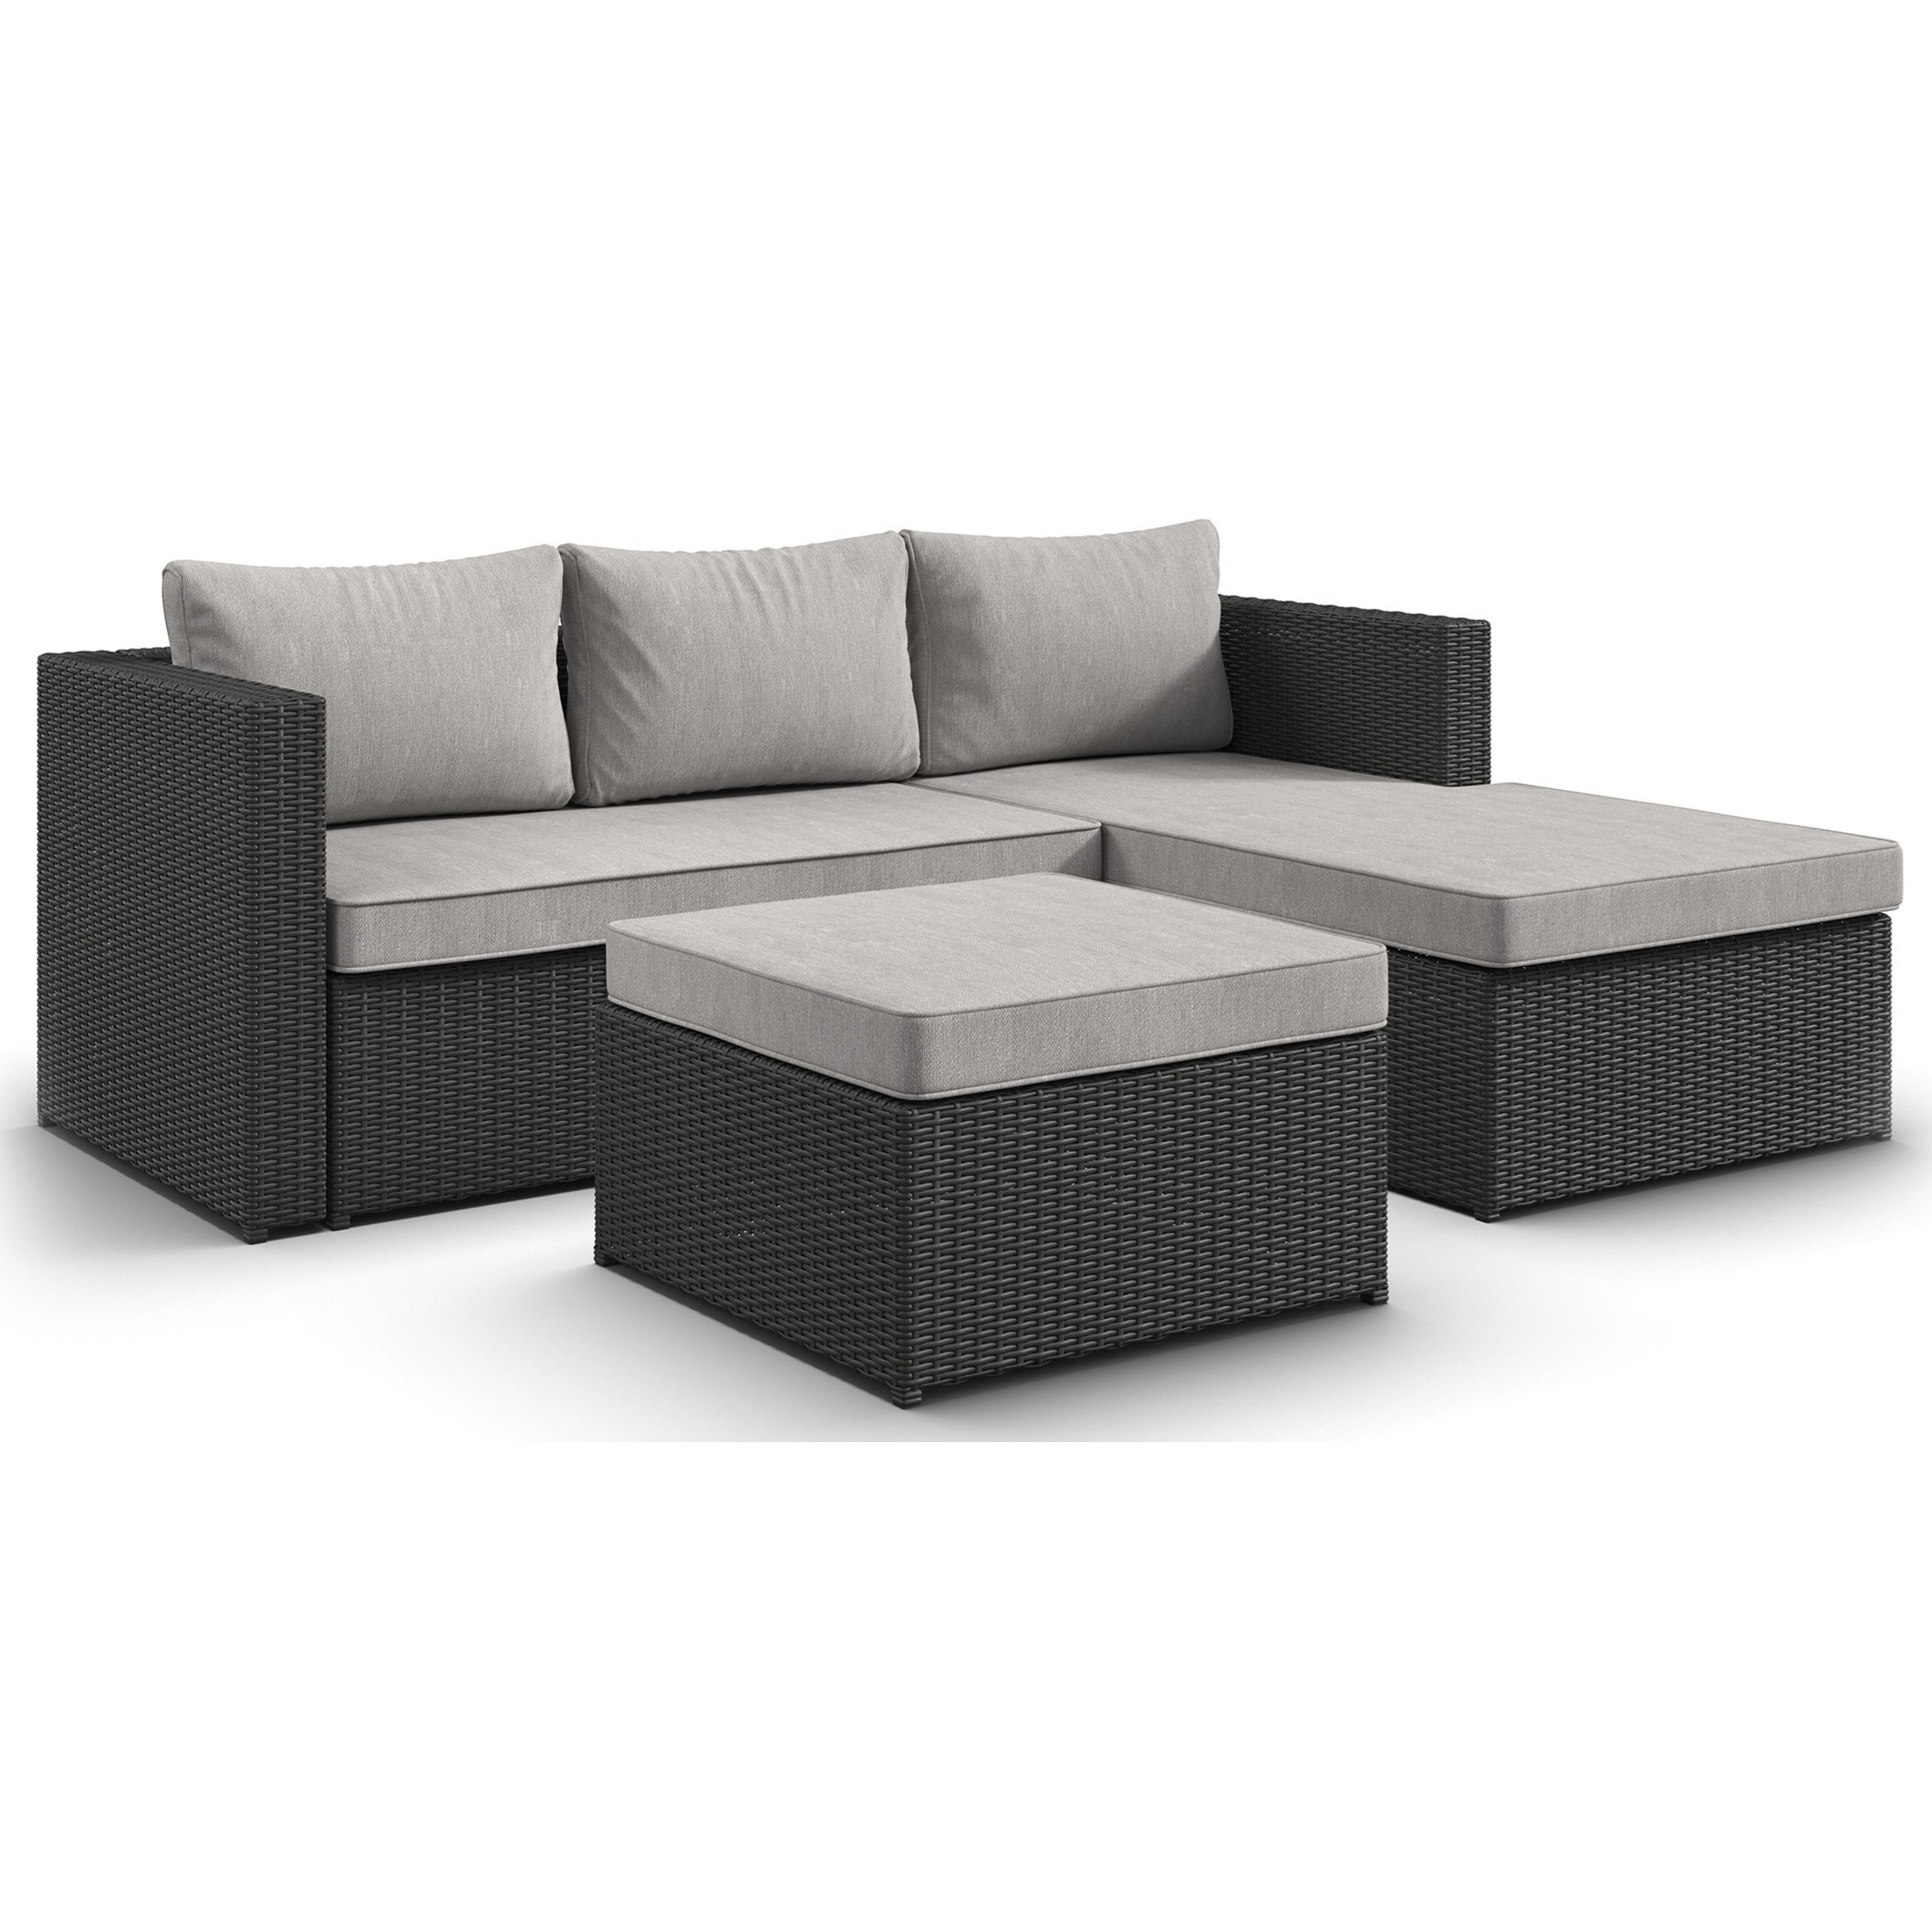 Signature Design by Ashley Pheasant Trail 3 Piece Outdoor Sectional Set - Item Number: P298-070